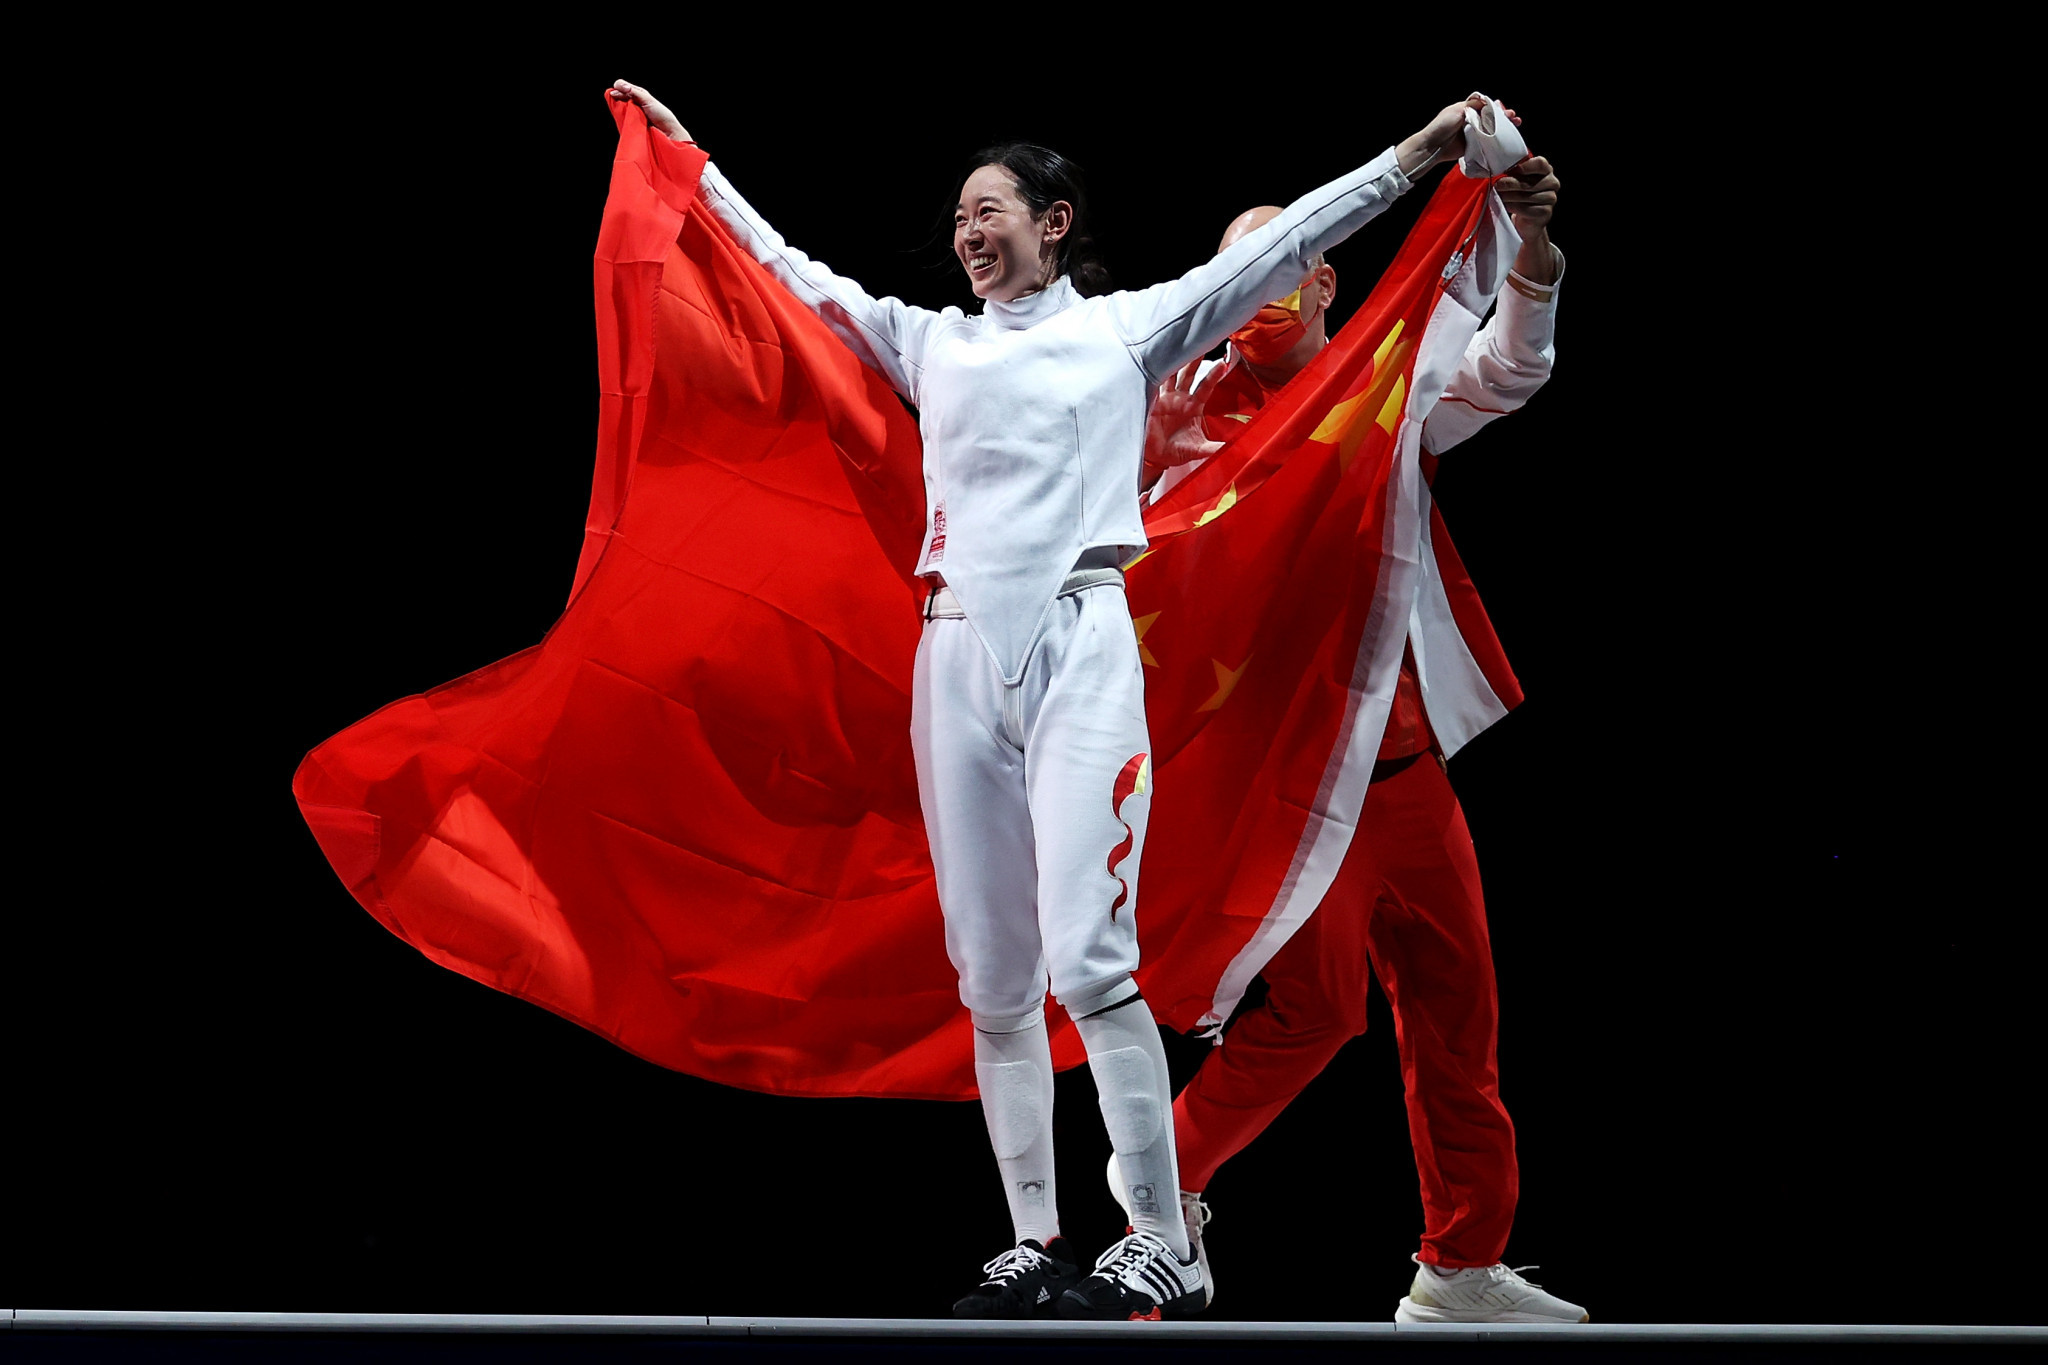 Yiwen Sun of China celebrates with her coach after winning the gold medal in the women's épée individual ©Getty Images